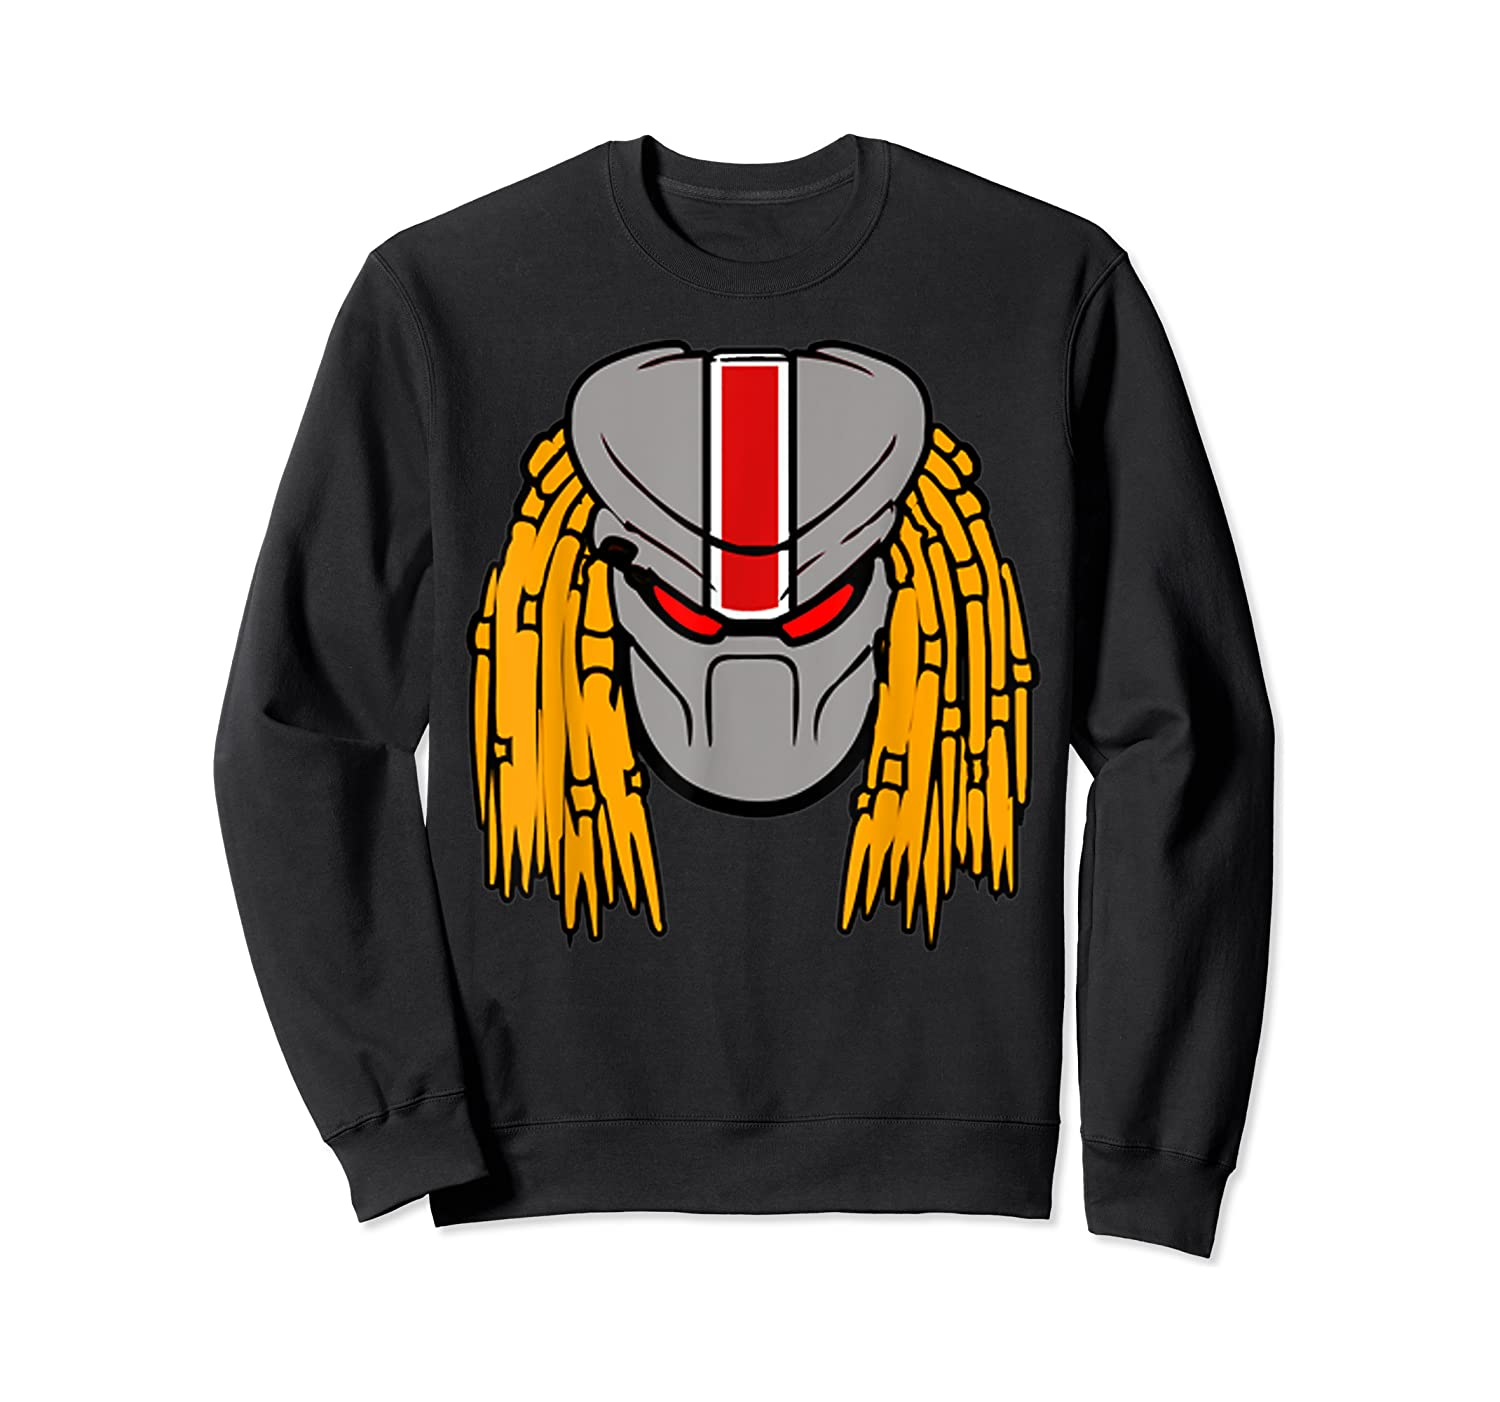 The State Of Ohio Loves The Predator Shirts Crewneck Sweater